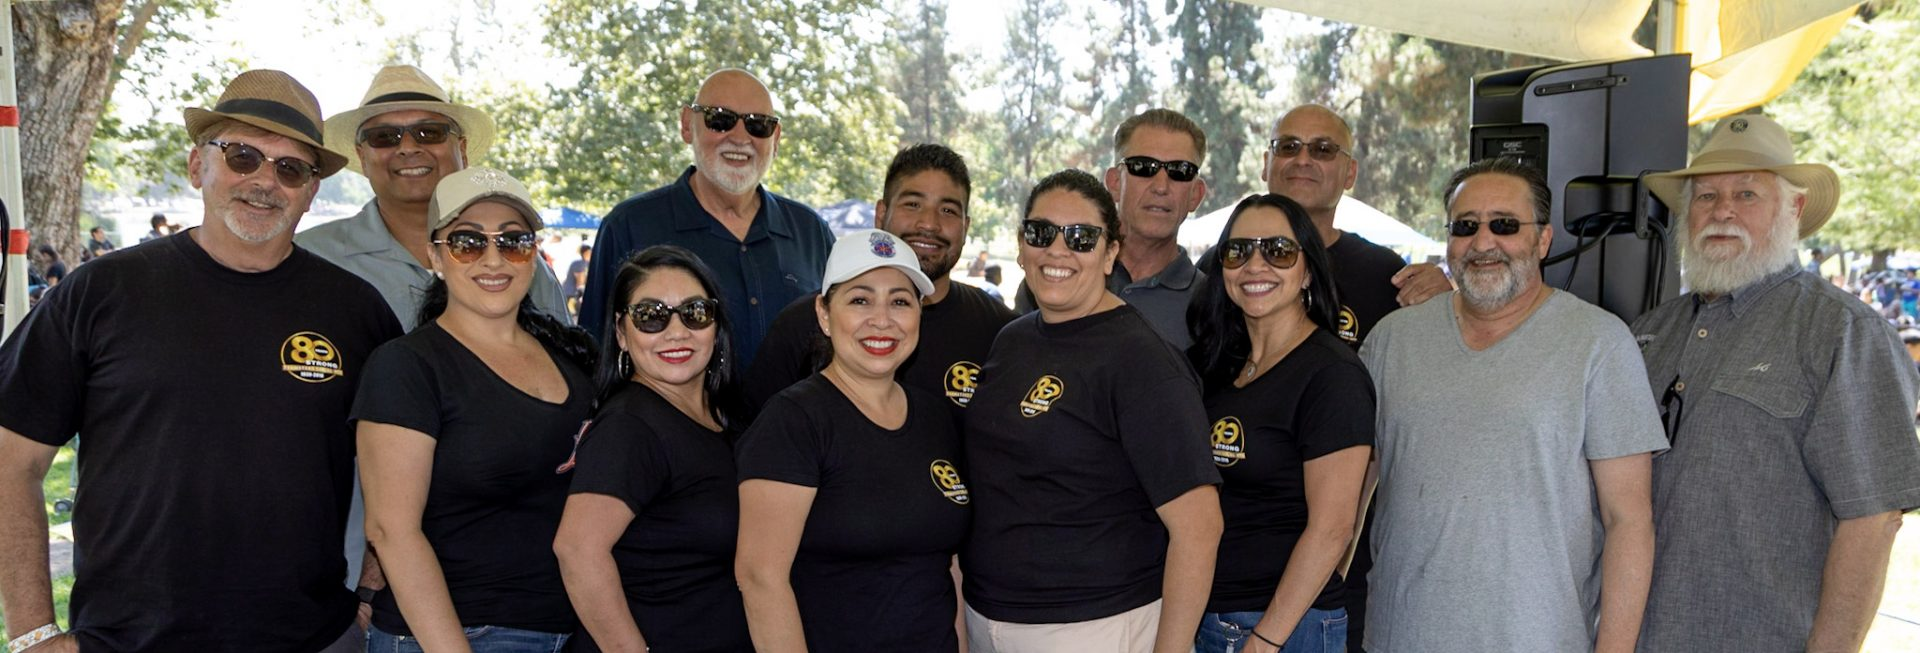 168-2019 Teamsters 495 Picnic-7911